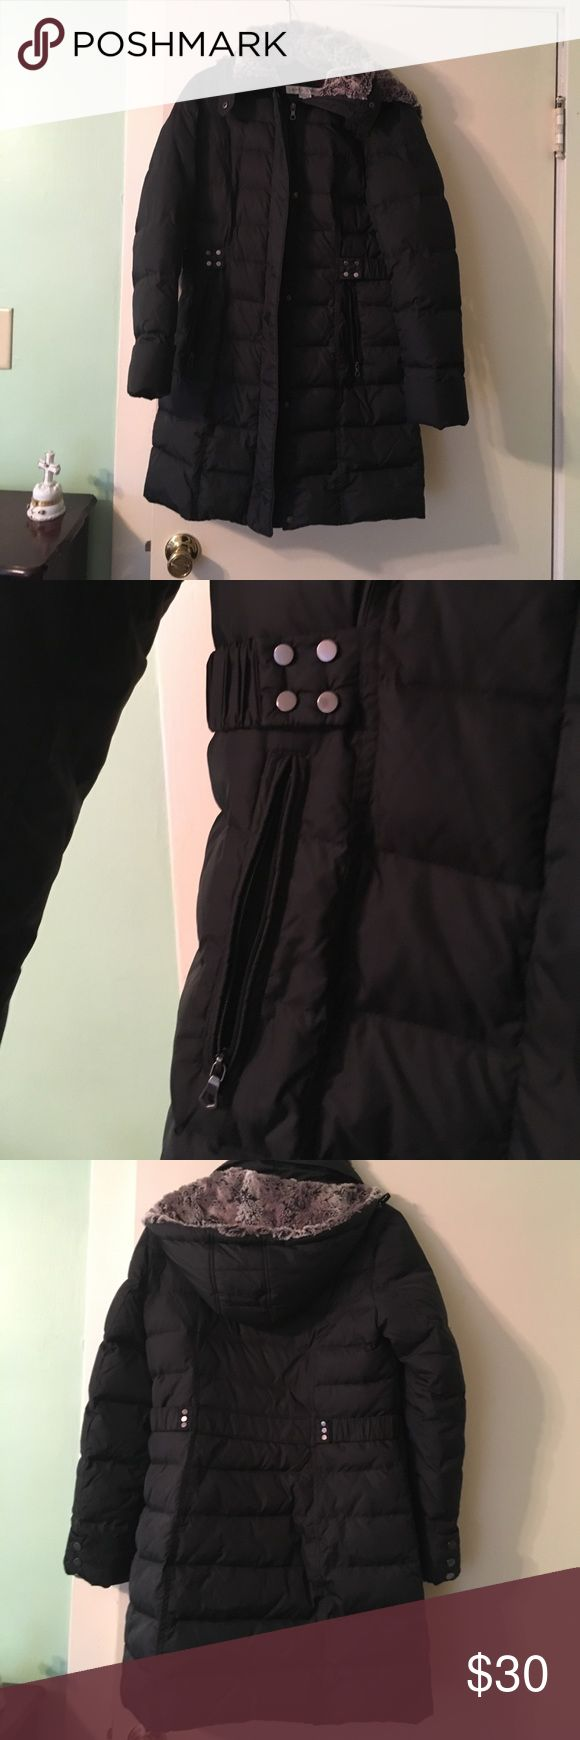 Mid length puffer coat Great light weight warm puffer jacket.  Hardly been warm. Soft faux fur hood is detachable.  It is filled with 60% down and 40% waterfowl.  All zippers are fully functioning.  Great condition.  Worn maybe twice. It was a little too narrow in the hips for me. Larry Levine Jackets & Coats Puffers